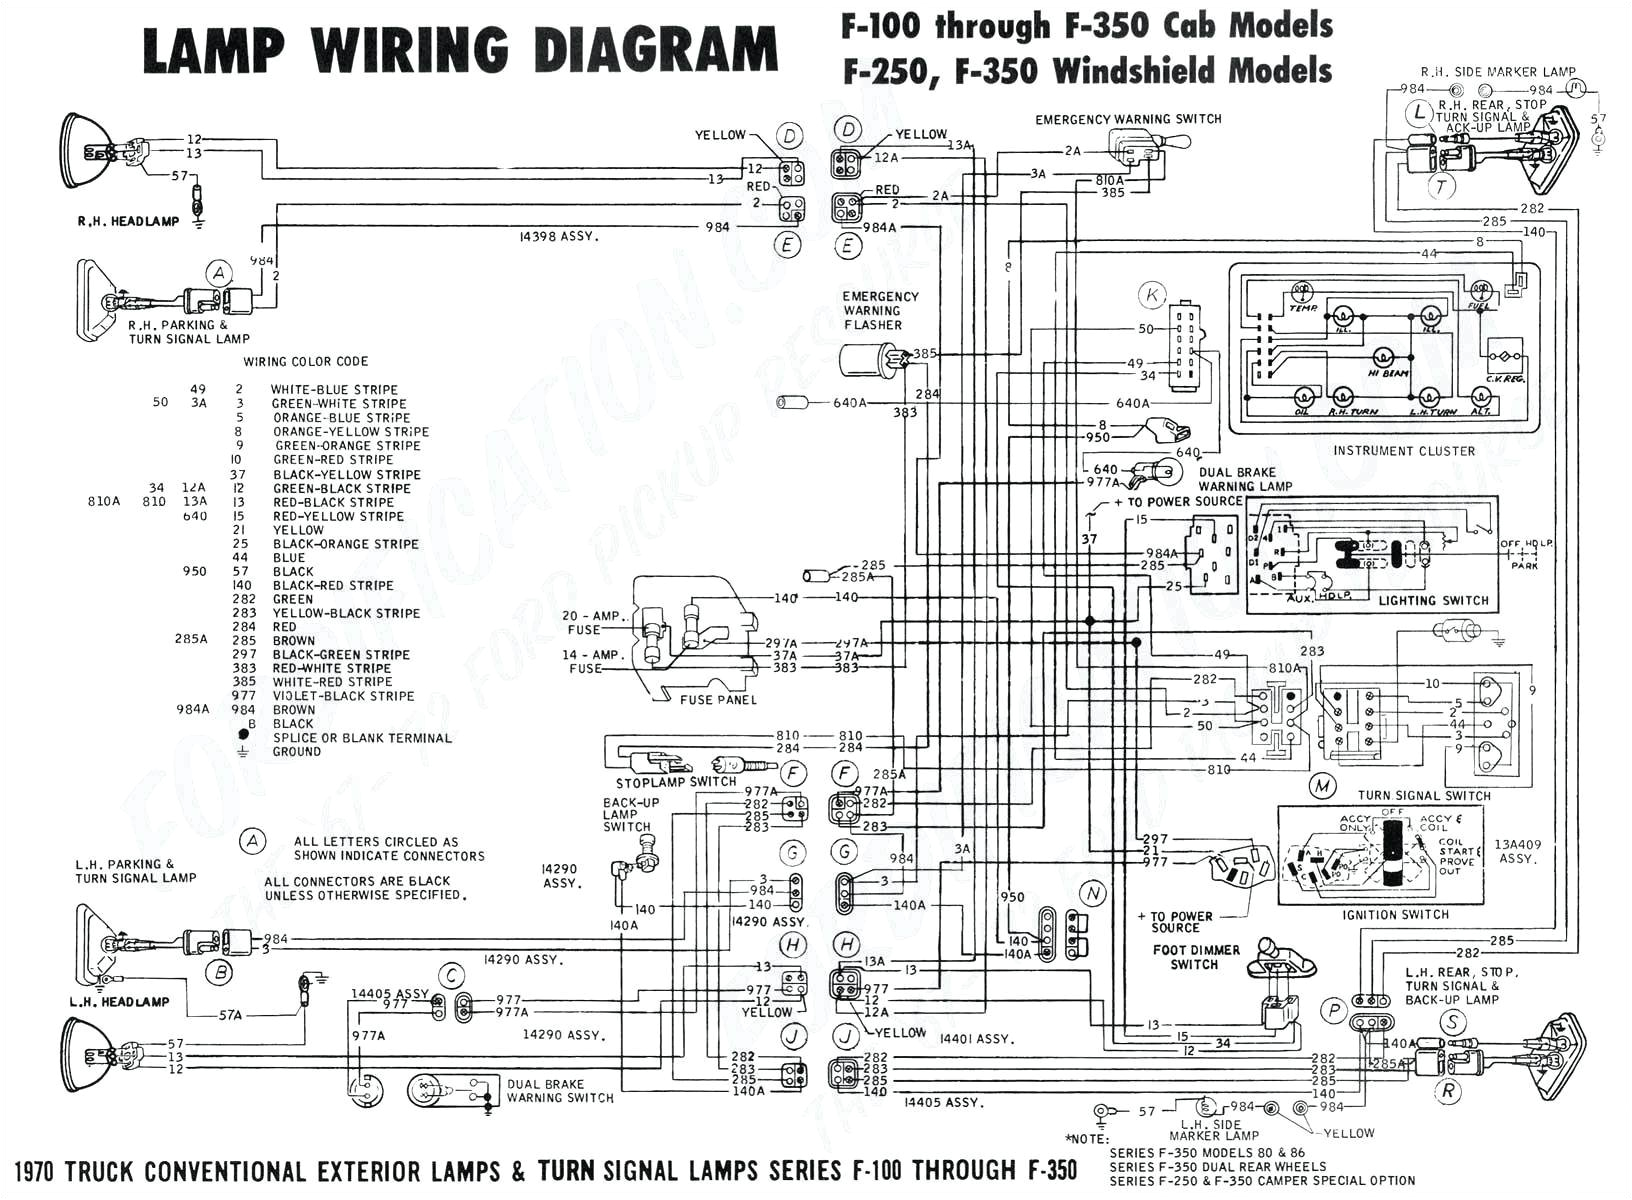 electrical wiring diagram books electrical wiring diagram ebook wiring diagram home of electrical wiring diagram books jpg